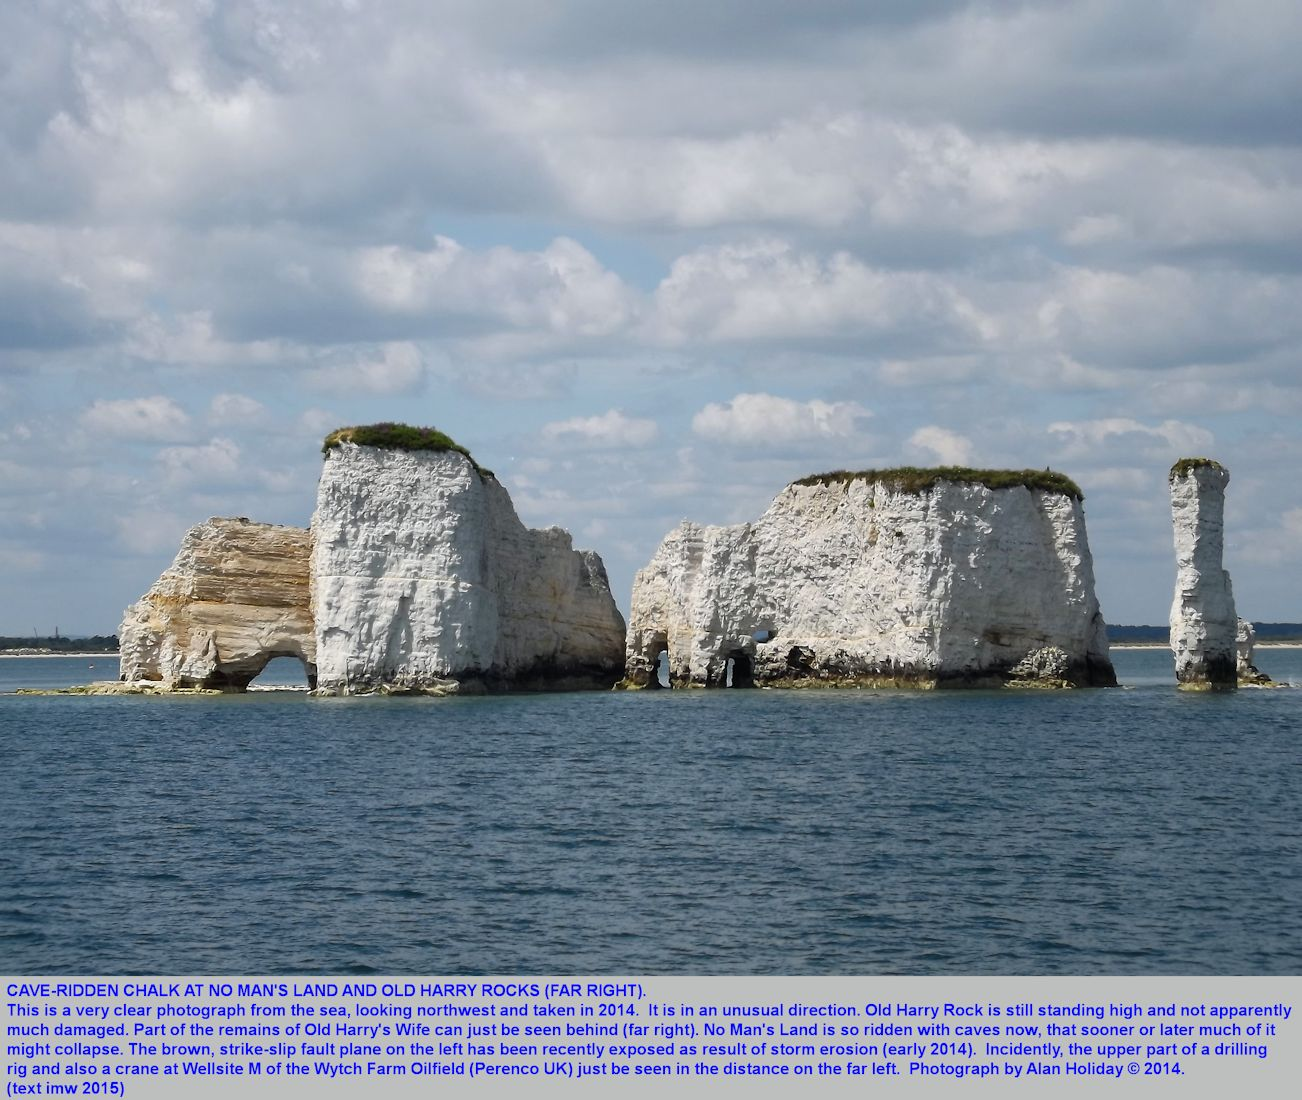 Old Harry Rocks and No Man's Land, Studland, Dorset, photographed from the sea by Alan Holiday, 2014, and showing extensive erosion and development of caves